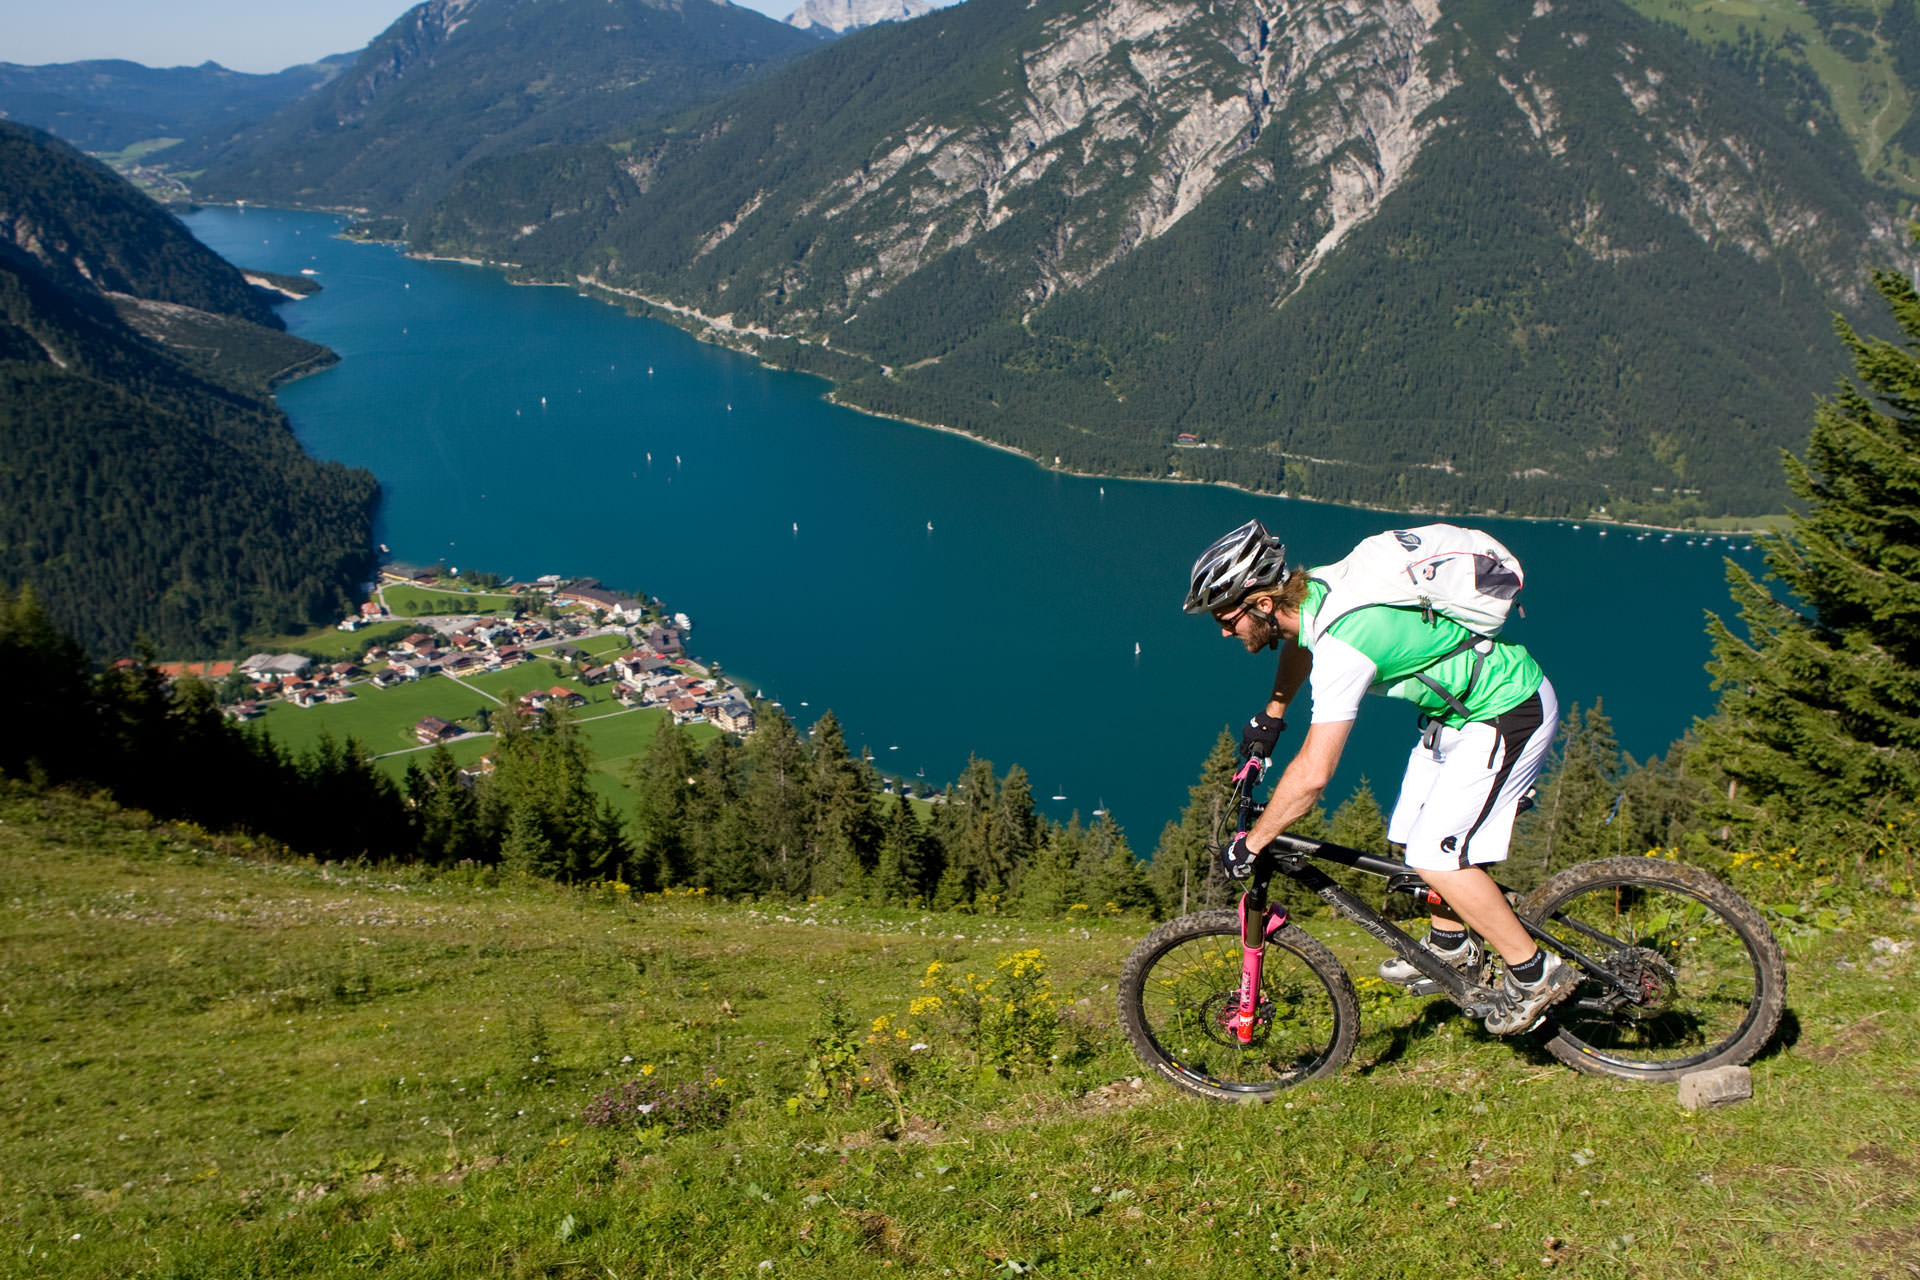 Mountain biker in the alps with lakeview